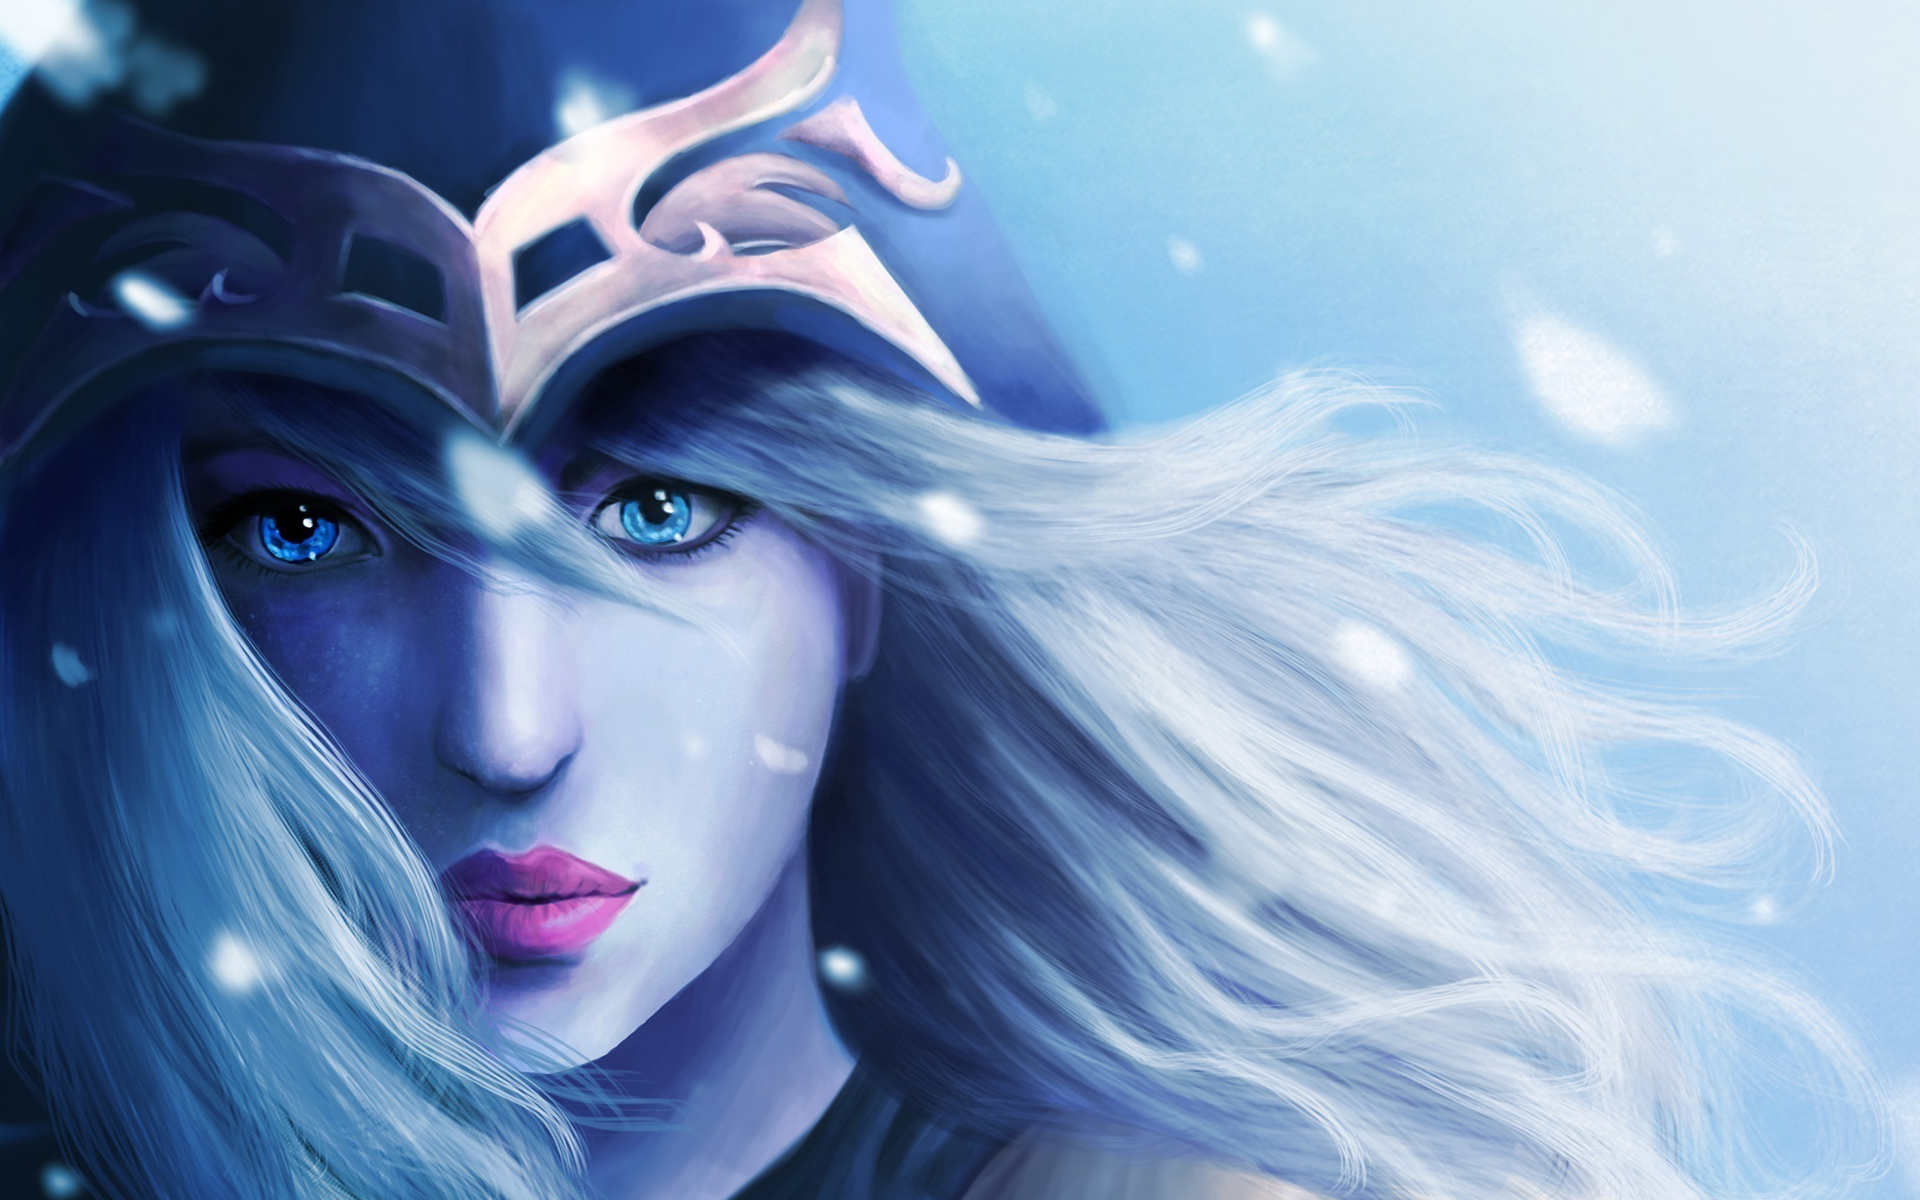 Free Download Ashe Fan Art League Of Legends Hd Wallpaper Lol